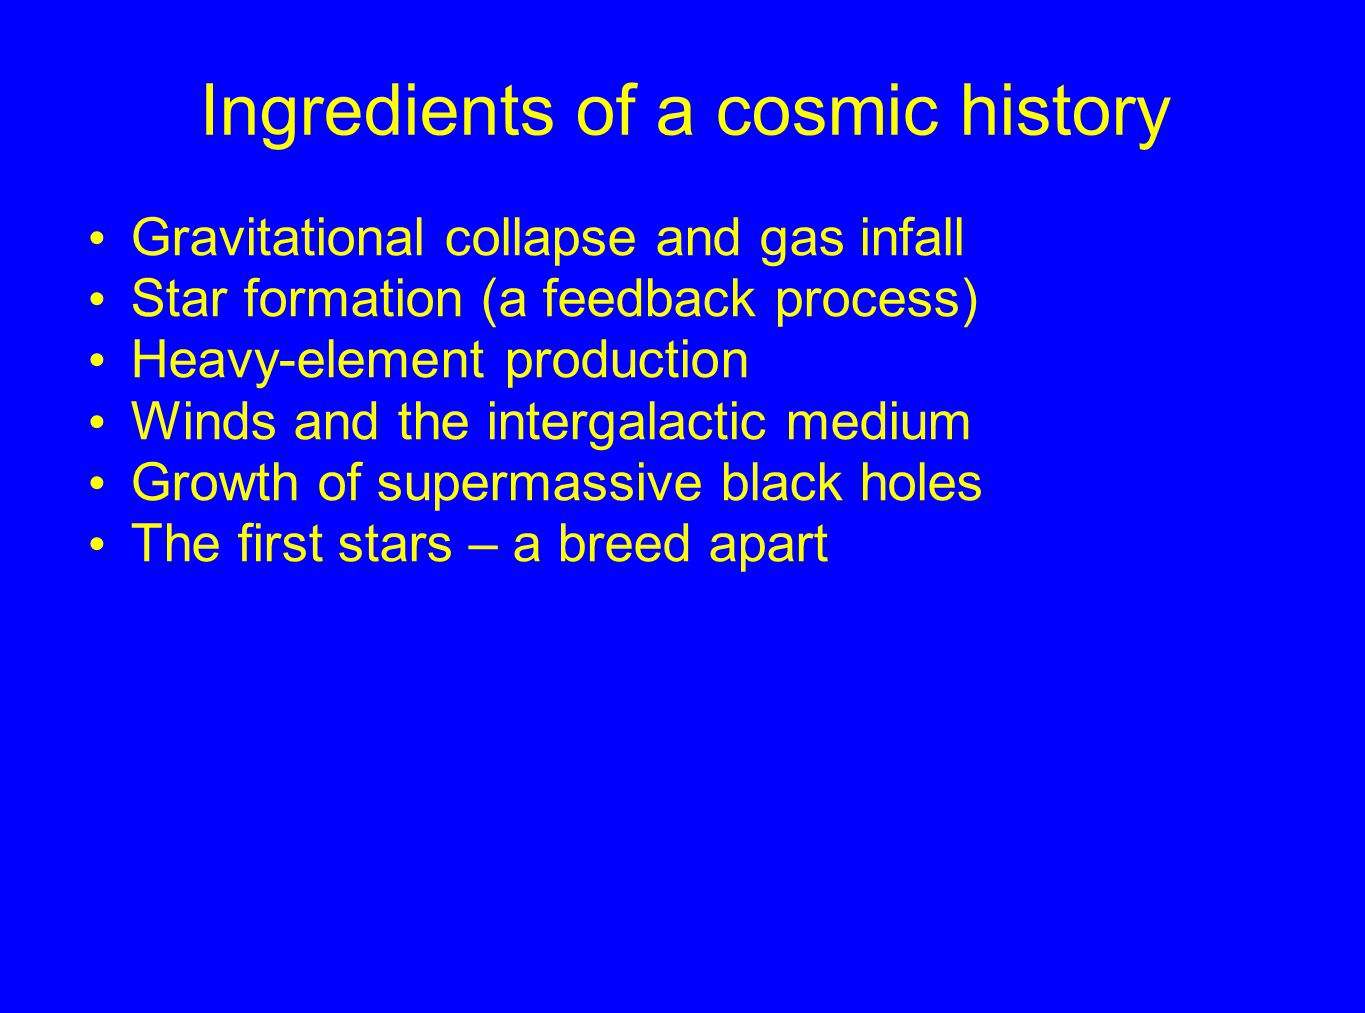 The First Stars (Population III) Formed of pure hydrogen/helium Very massive (80-300 solar masses) Hot, short-lived Energetic supernova explosions Enriched surrounding gas, disrupted parental gas clouds Enrichment led to normal star formation Enriched intergalactic gas as well